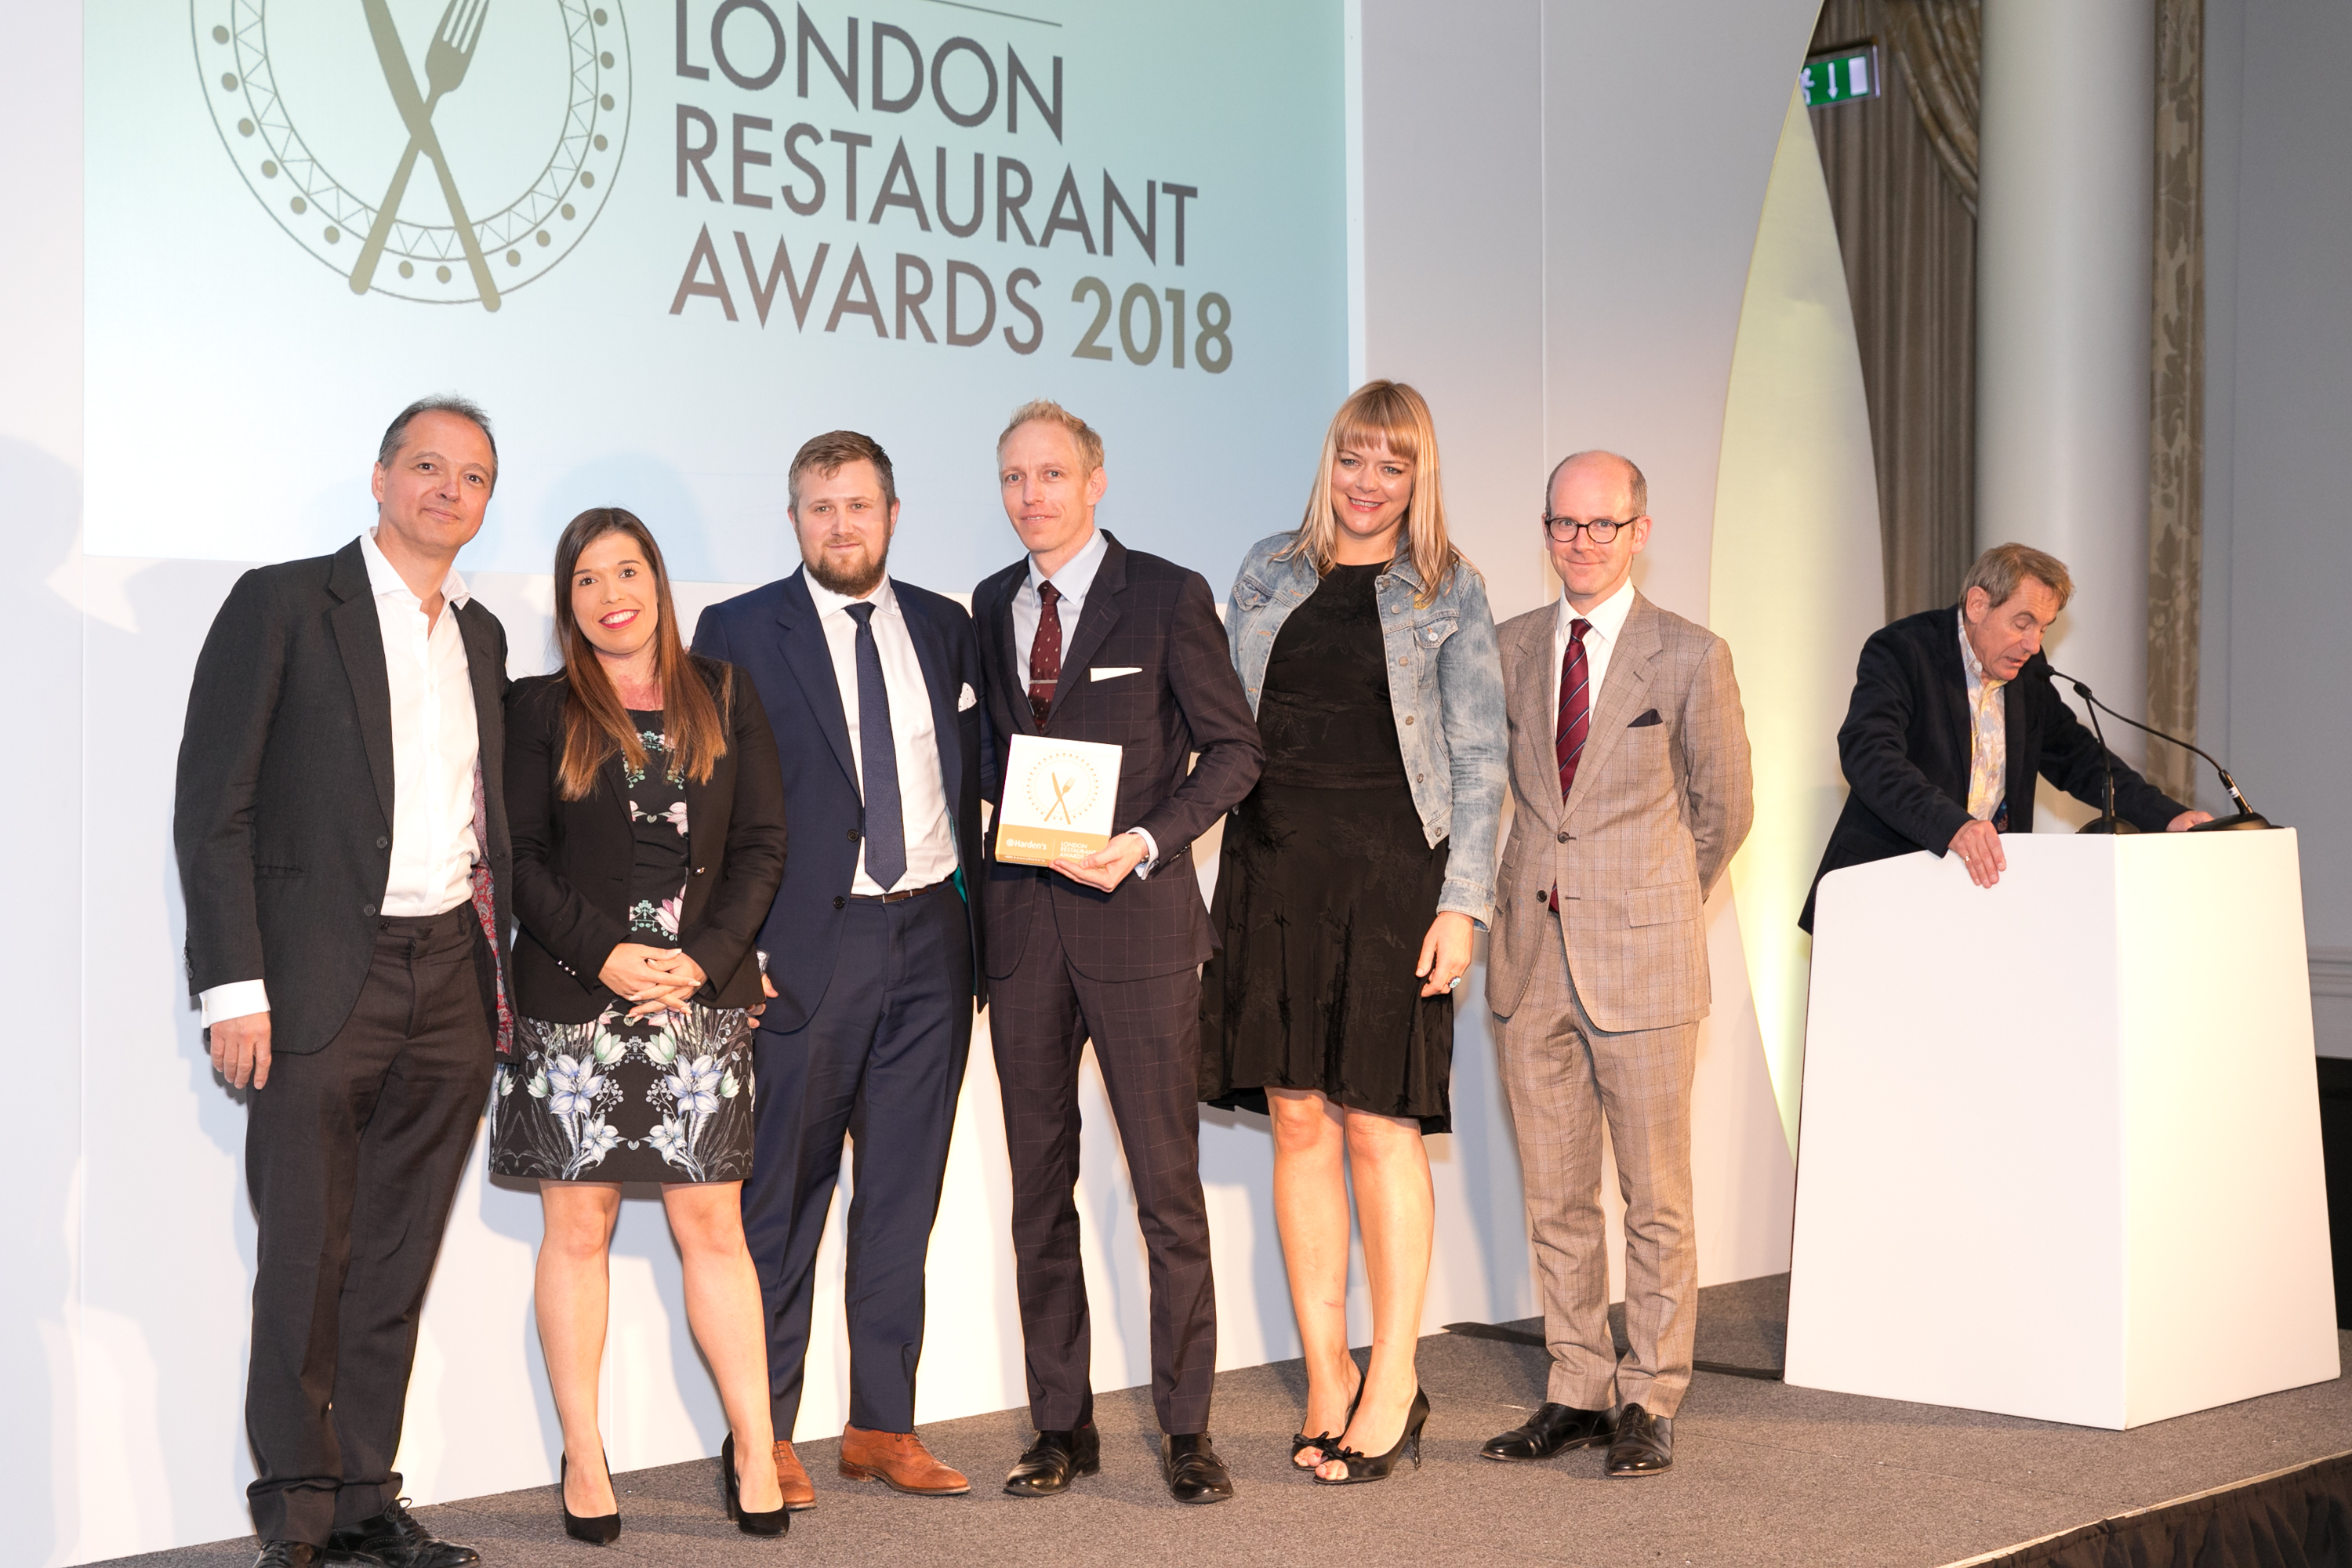 Core by Clare Smyth - Top Gastronomic Experience 2018 at Hardens London Restaurant Awards 2018